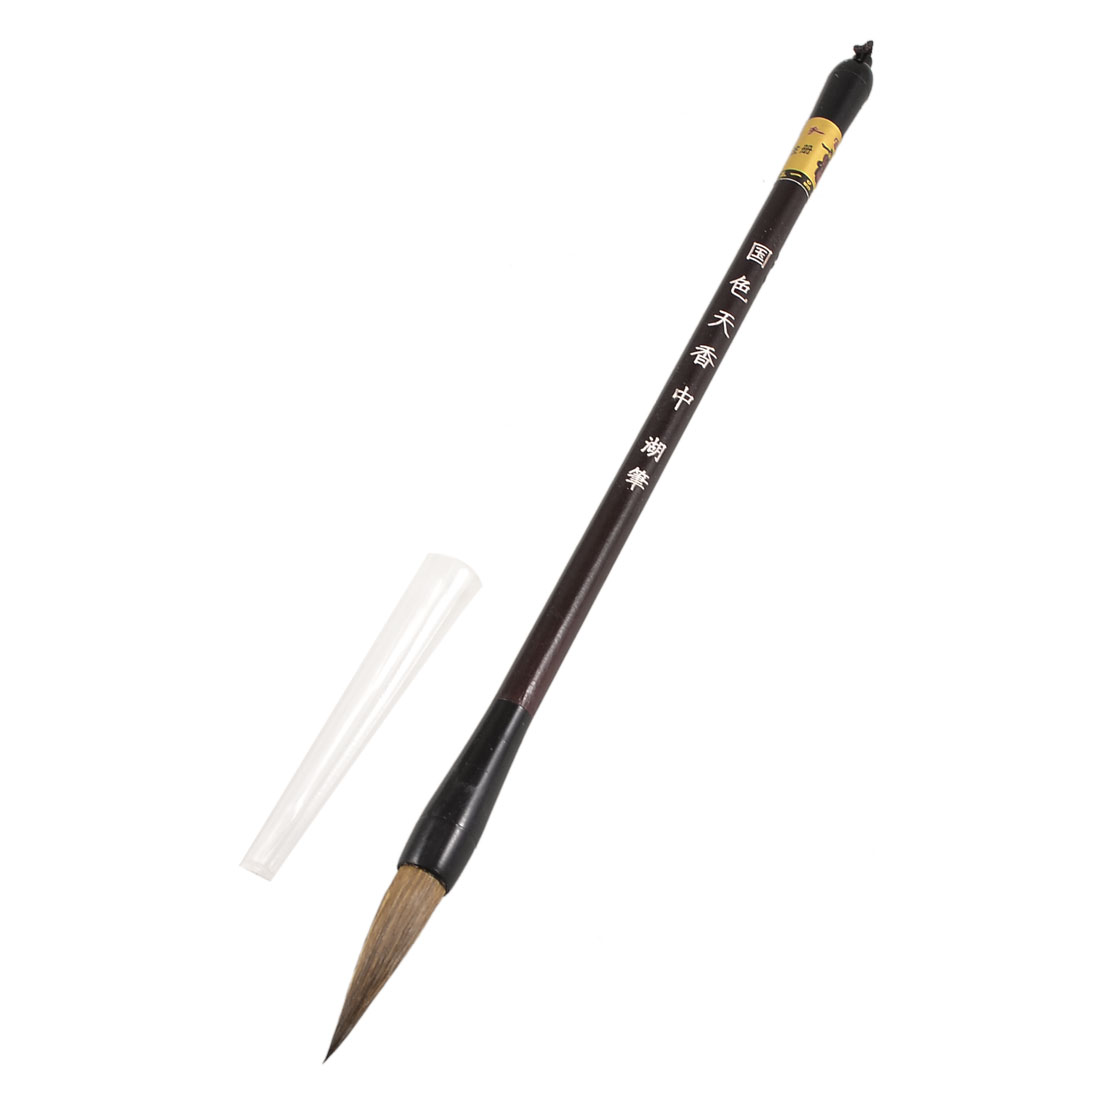 26cm Length Chinese Painting Writing Calligraphy Tool Small Writing Brush w Cap